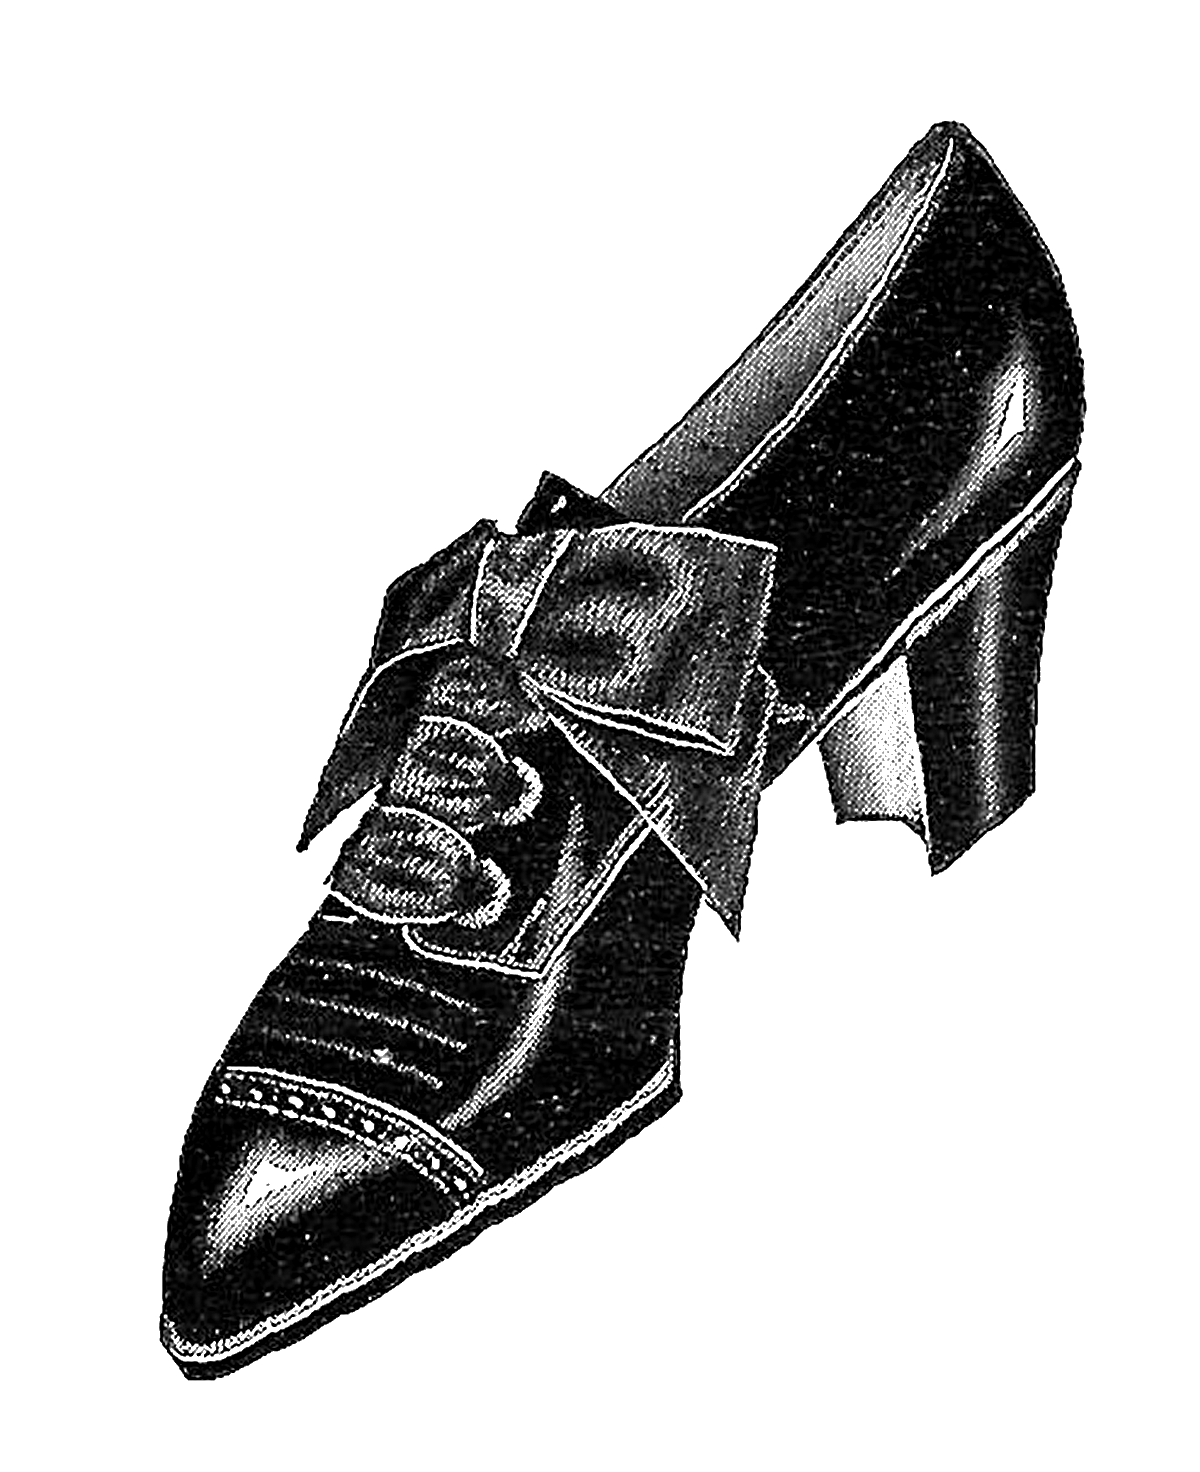 Perfect Women39s Shoes Royalty Free Stock Images  Image 25490359